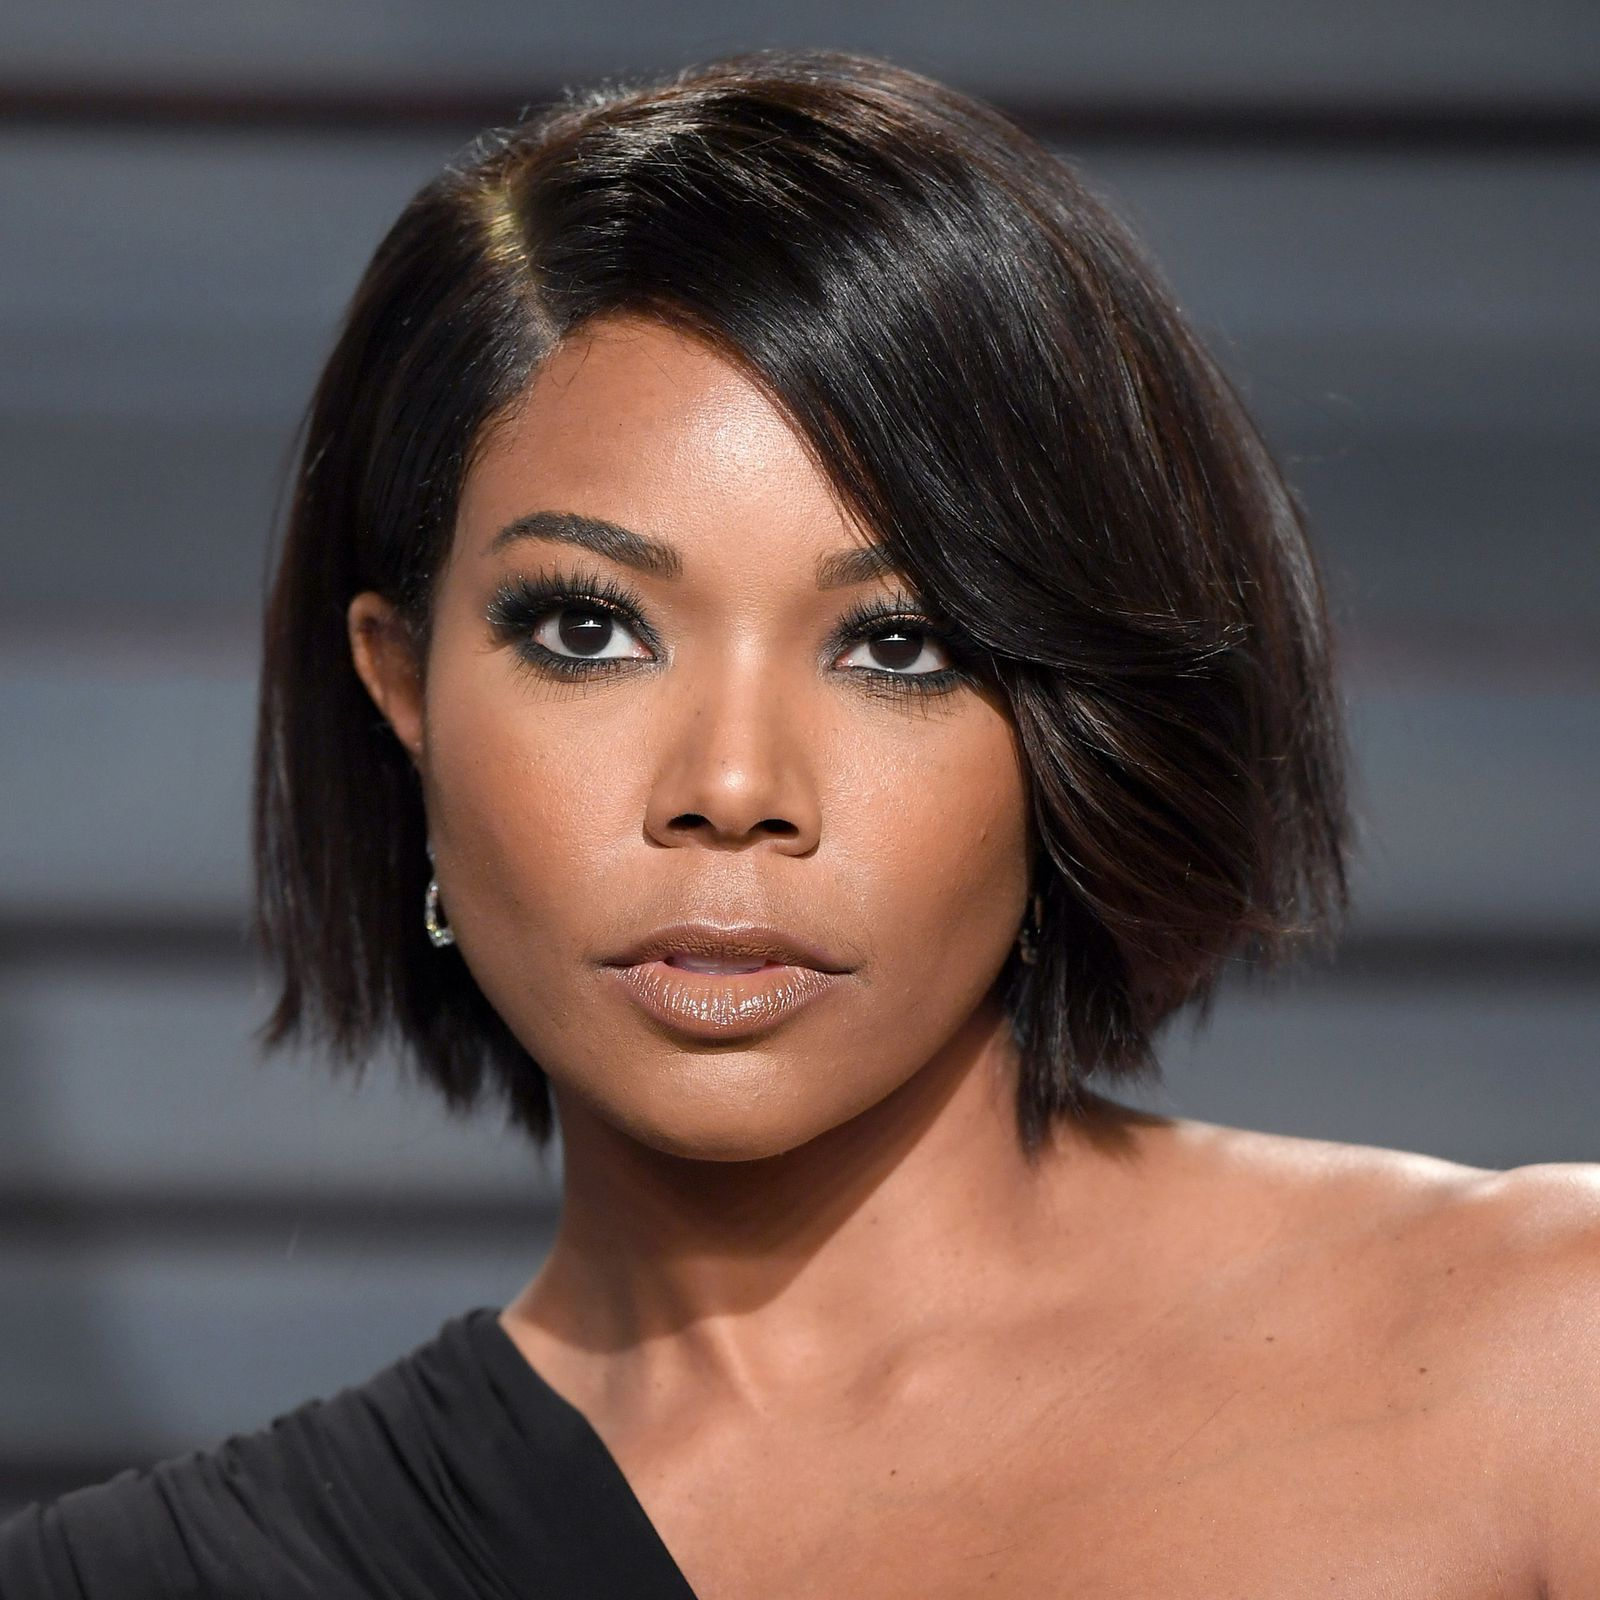 87 Cute Short Hairstylesand How To Pull Them Off Gabrielle Union